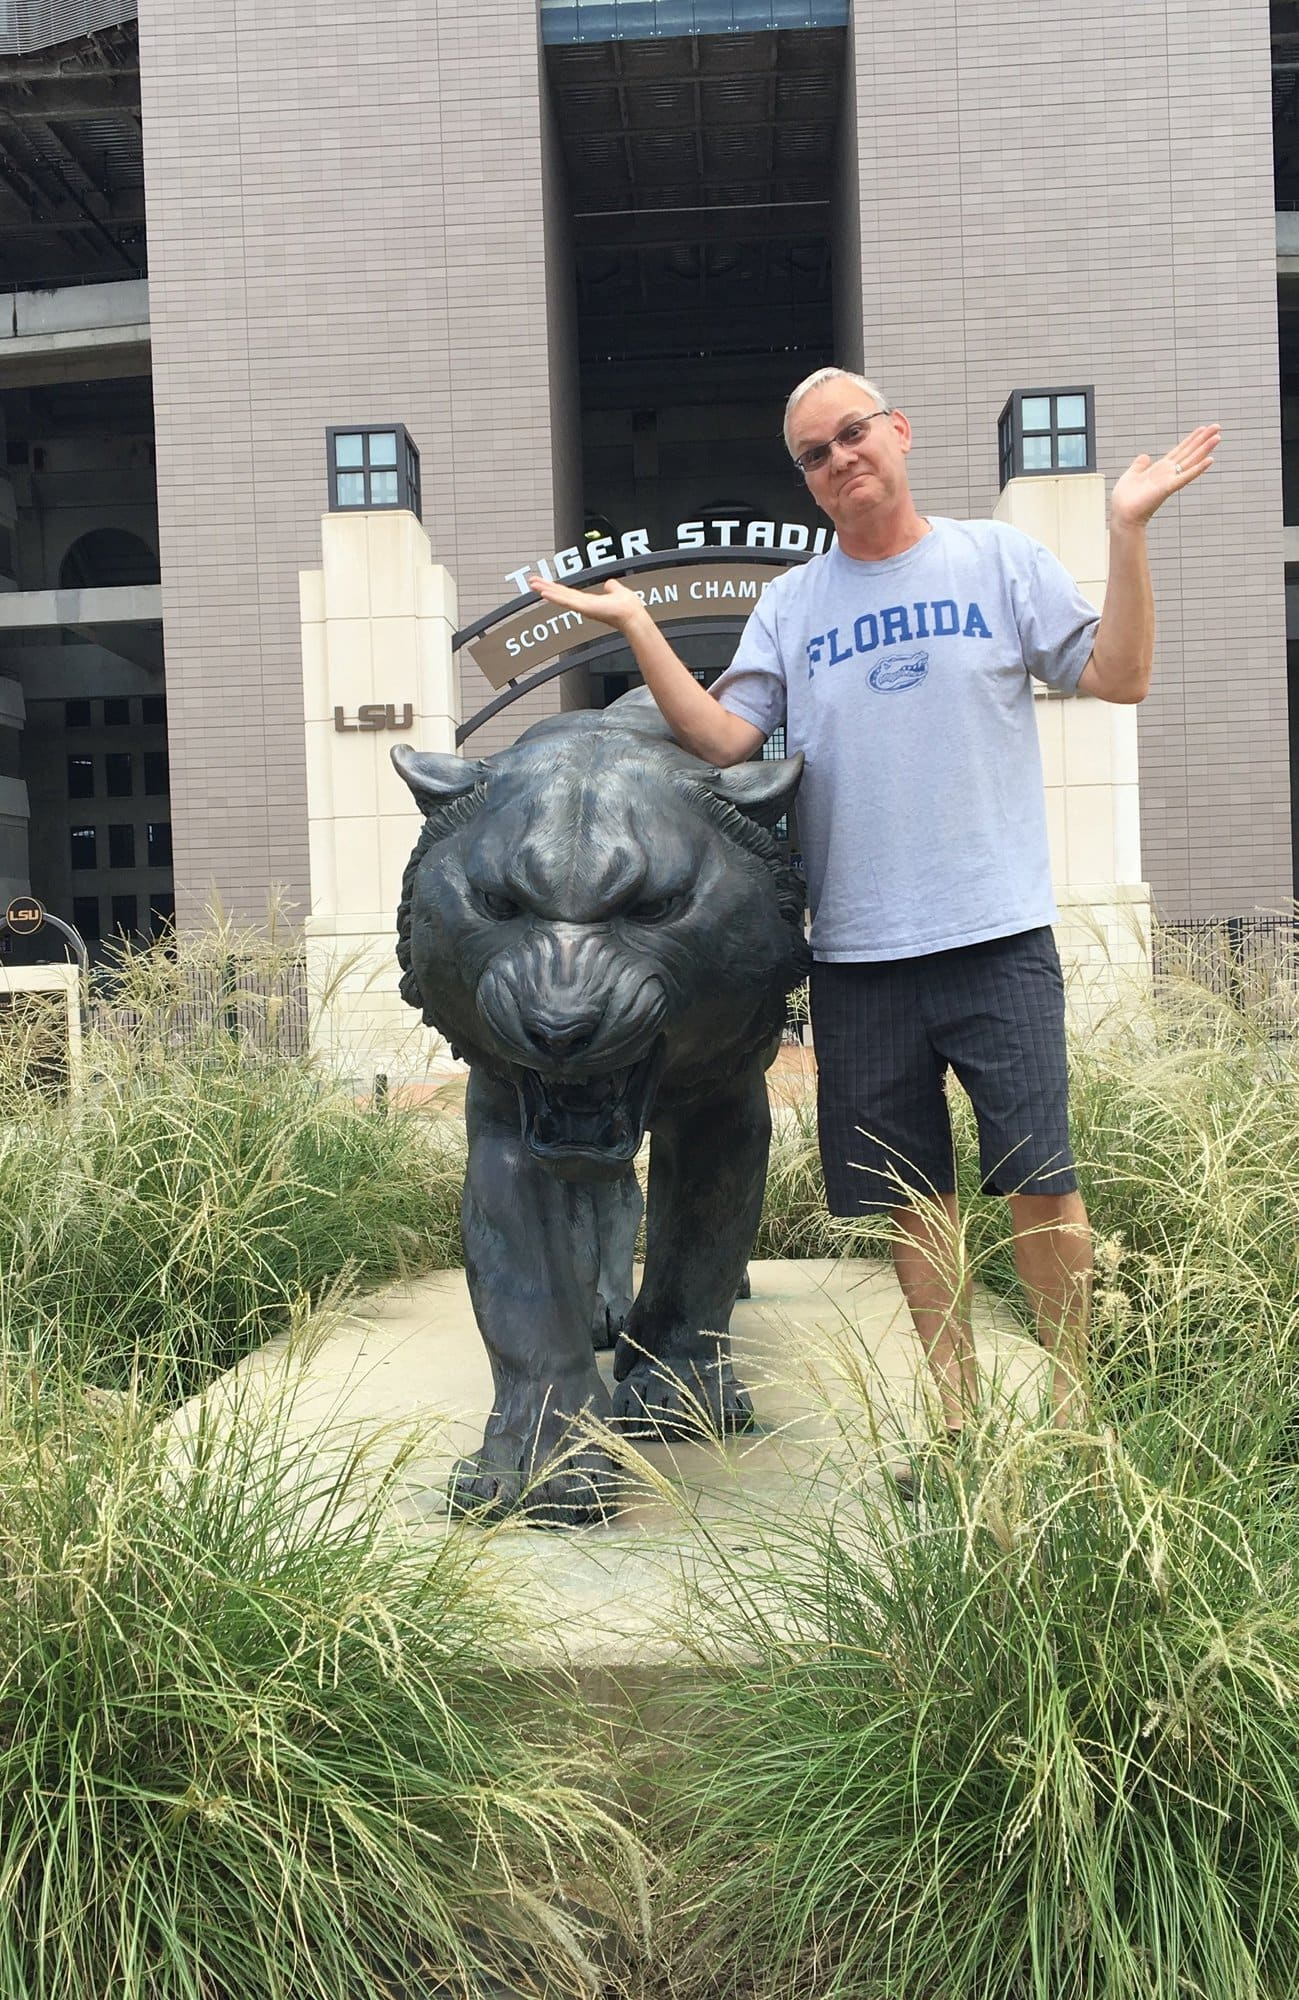 Norm with LSU Tiger statue, wearing a Florida Gators t-shirt